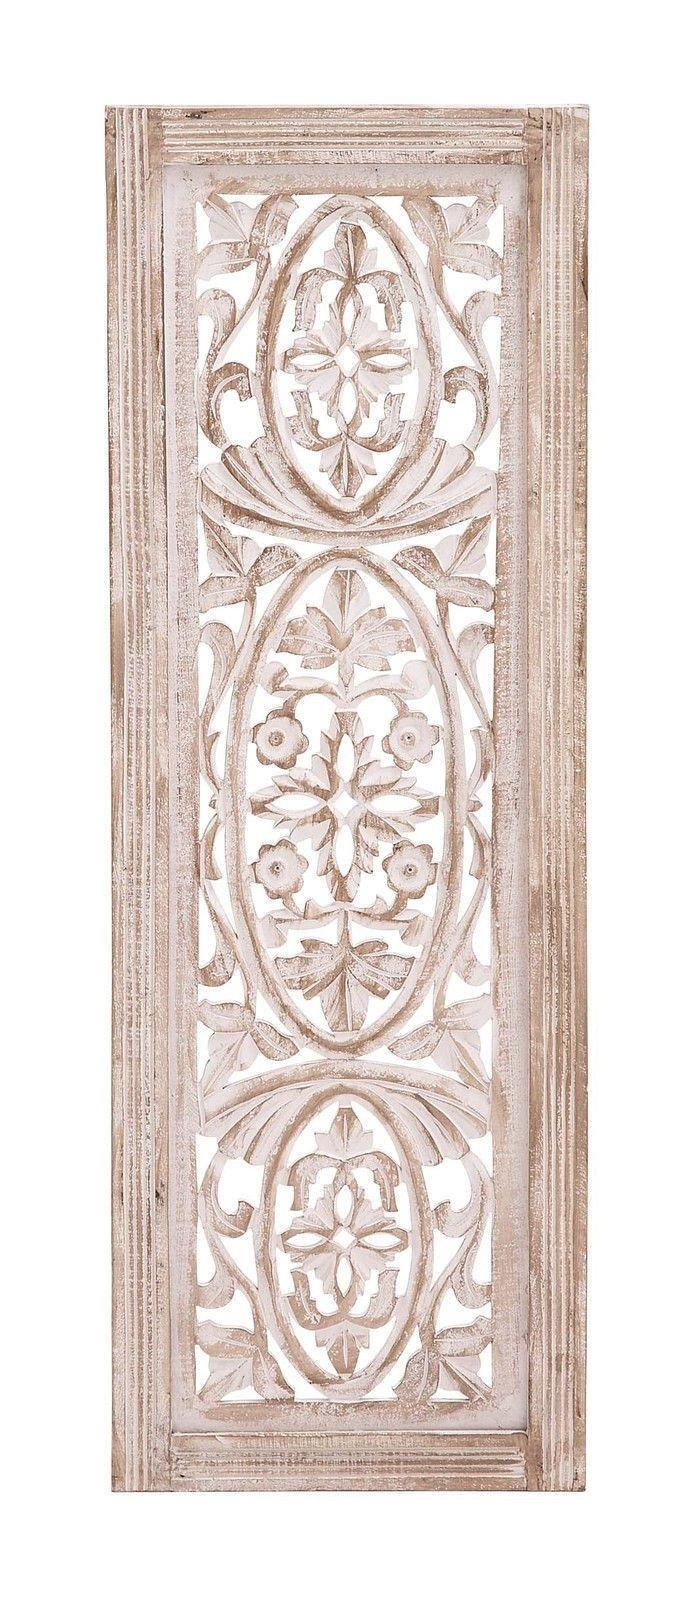 Wooden Wall Art Panels Part - 50: Featured Image Of Wood Carved Wall Art Panels